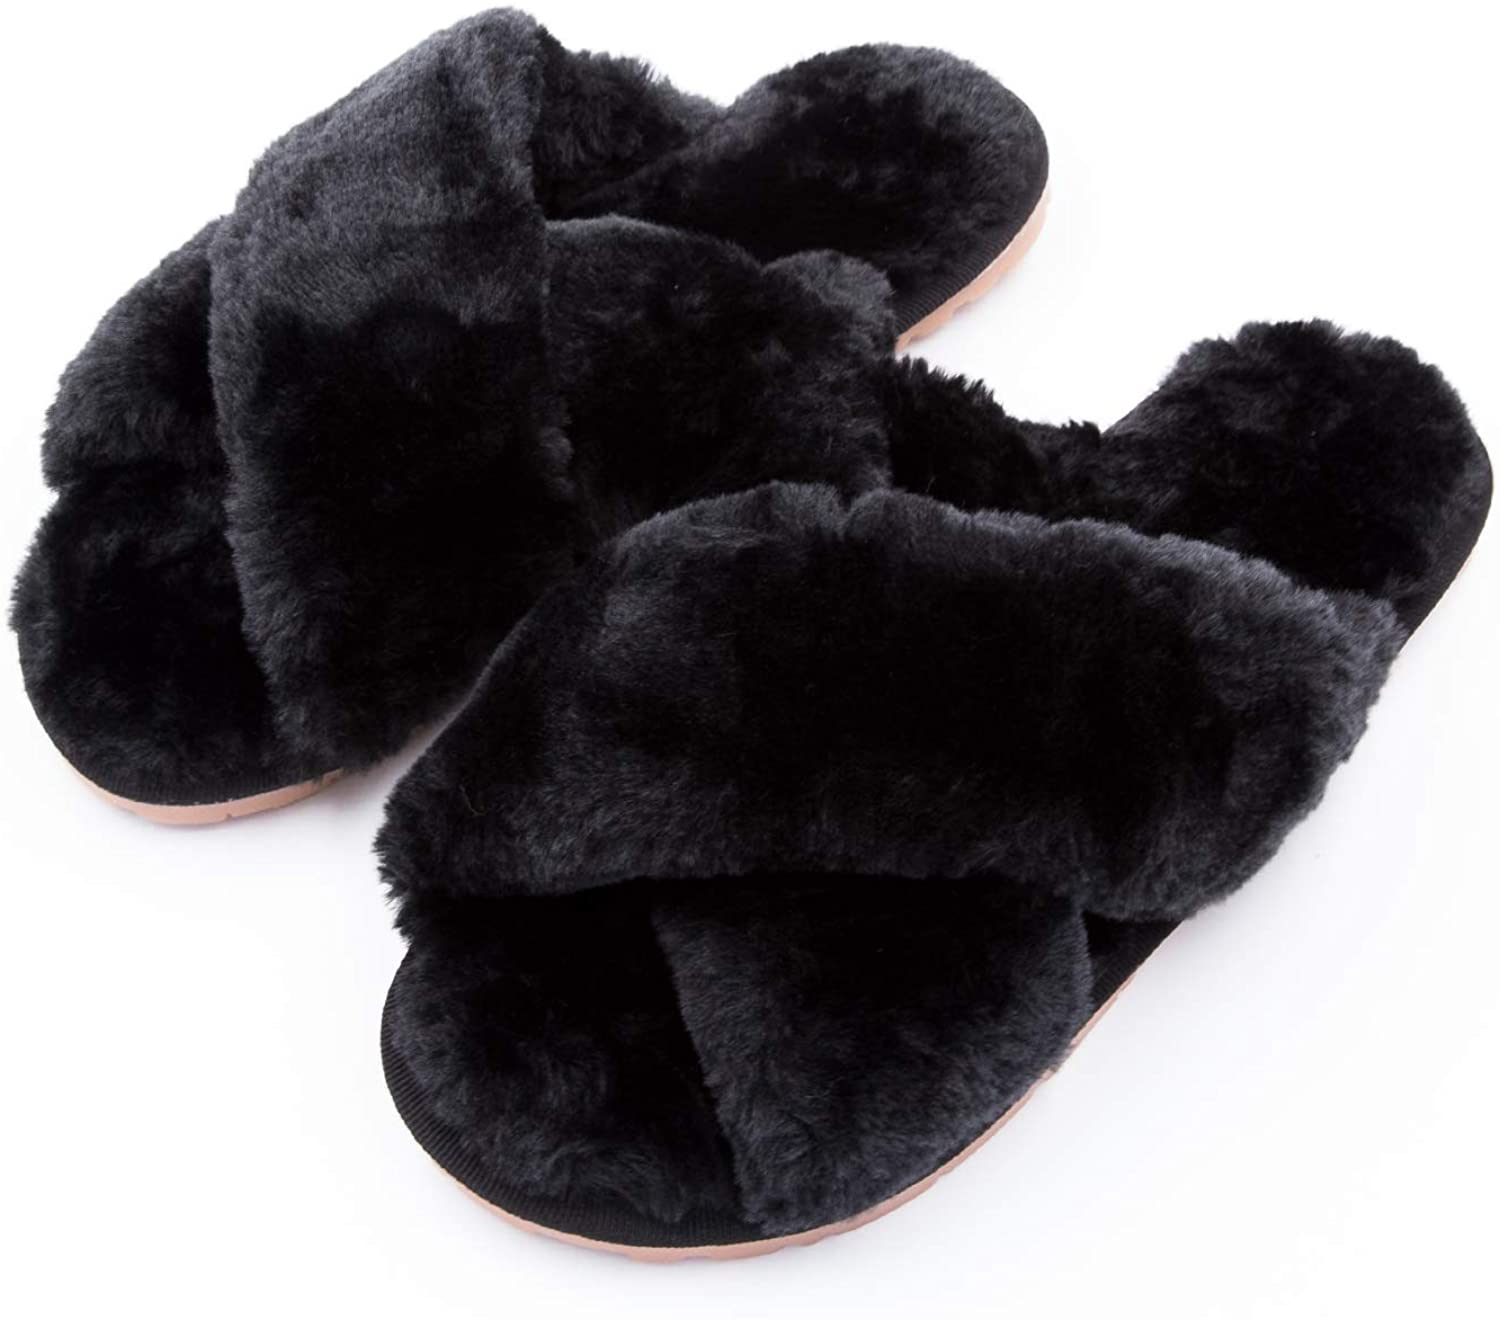 Womens Fuzzy Slippers(Black)Ehoomely